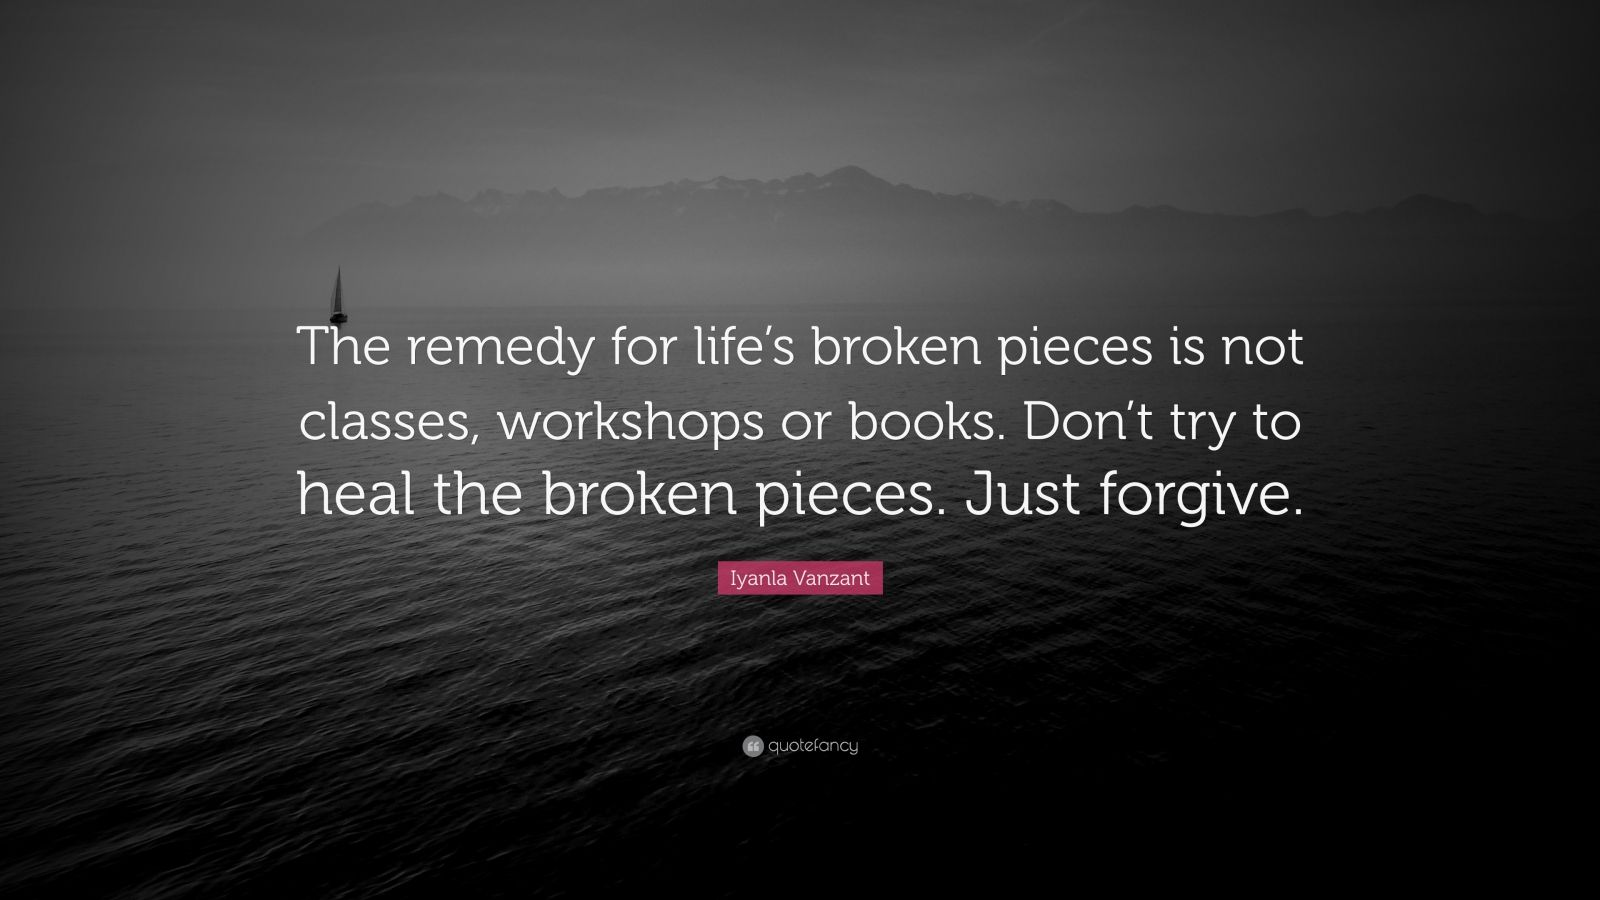 """Iyanla Vanzant Quote: """"The remedy for life's broken pieces is not classes, workshops or books. Don't try to heal the broken pieces. Just forgive."""""""